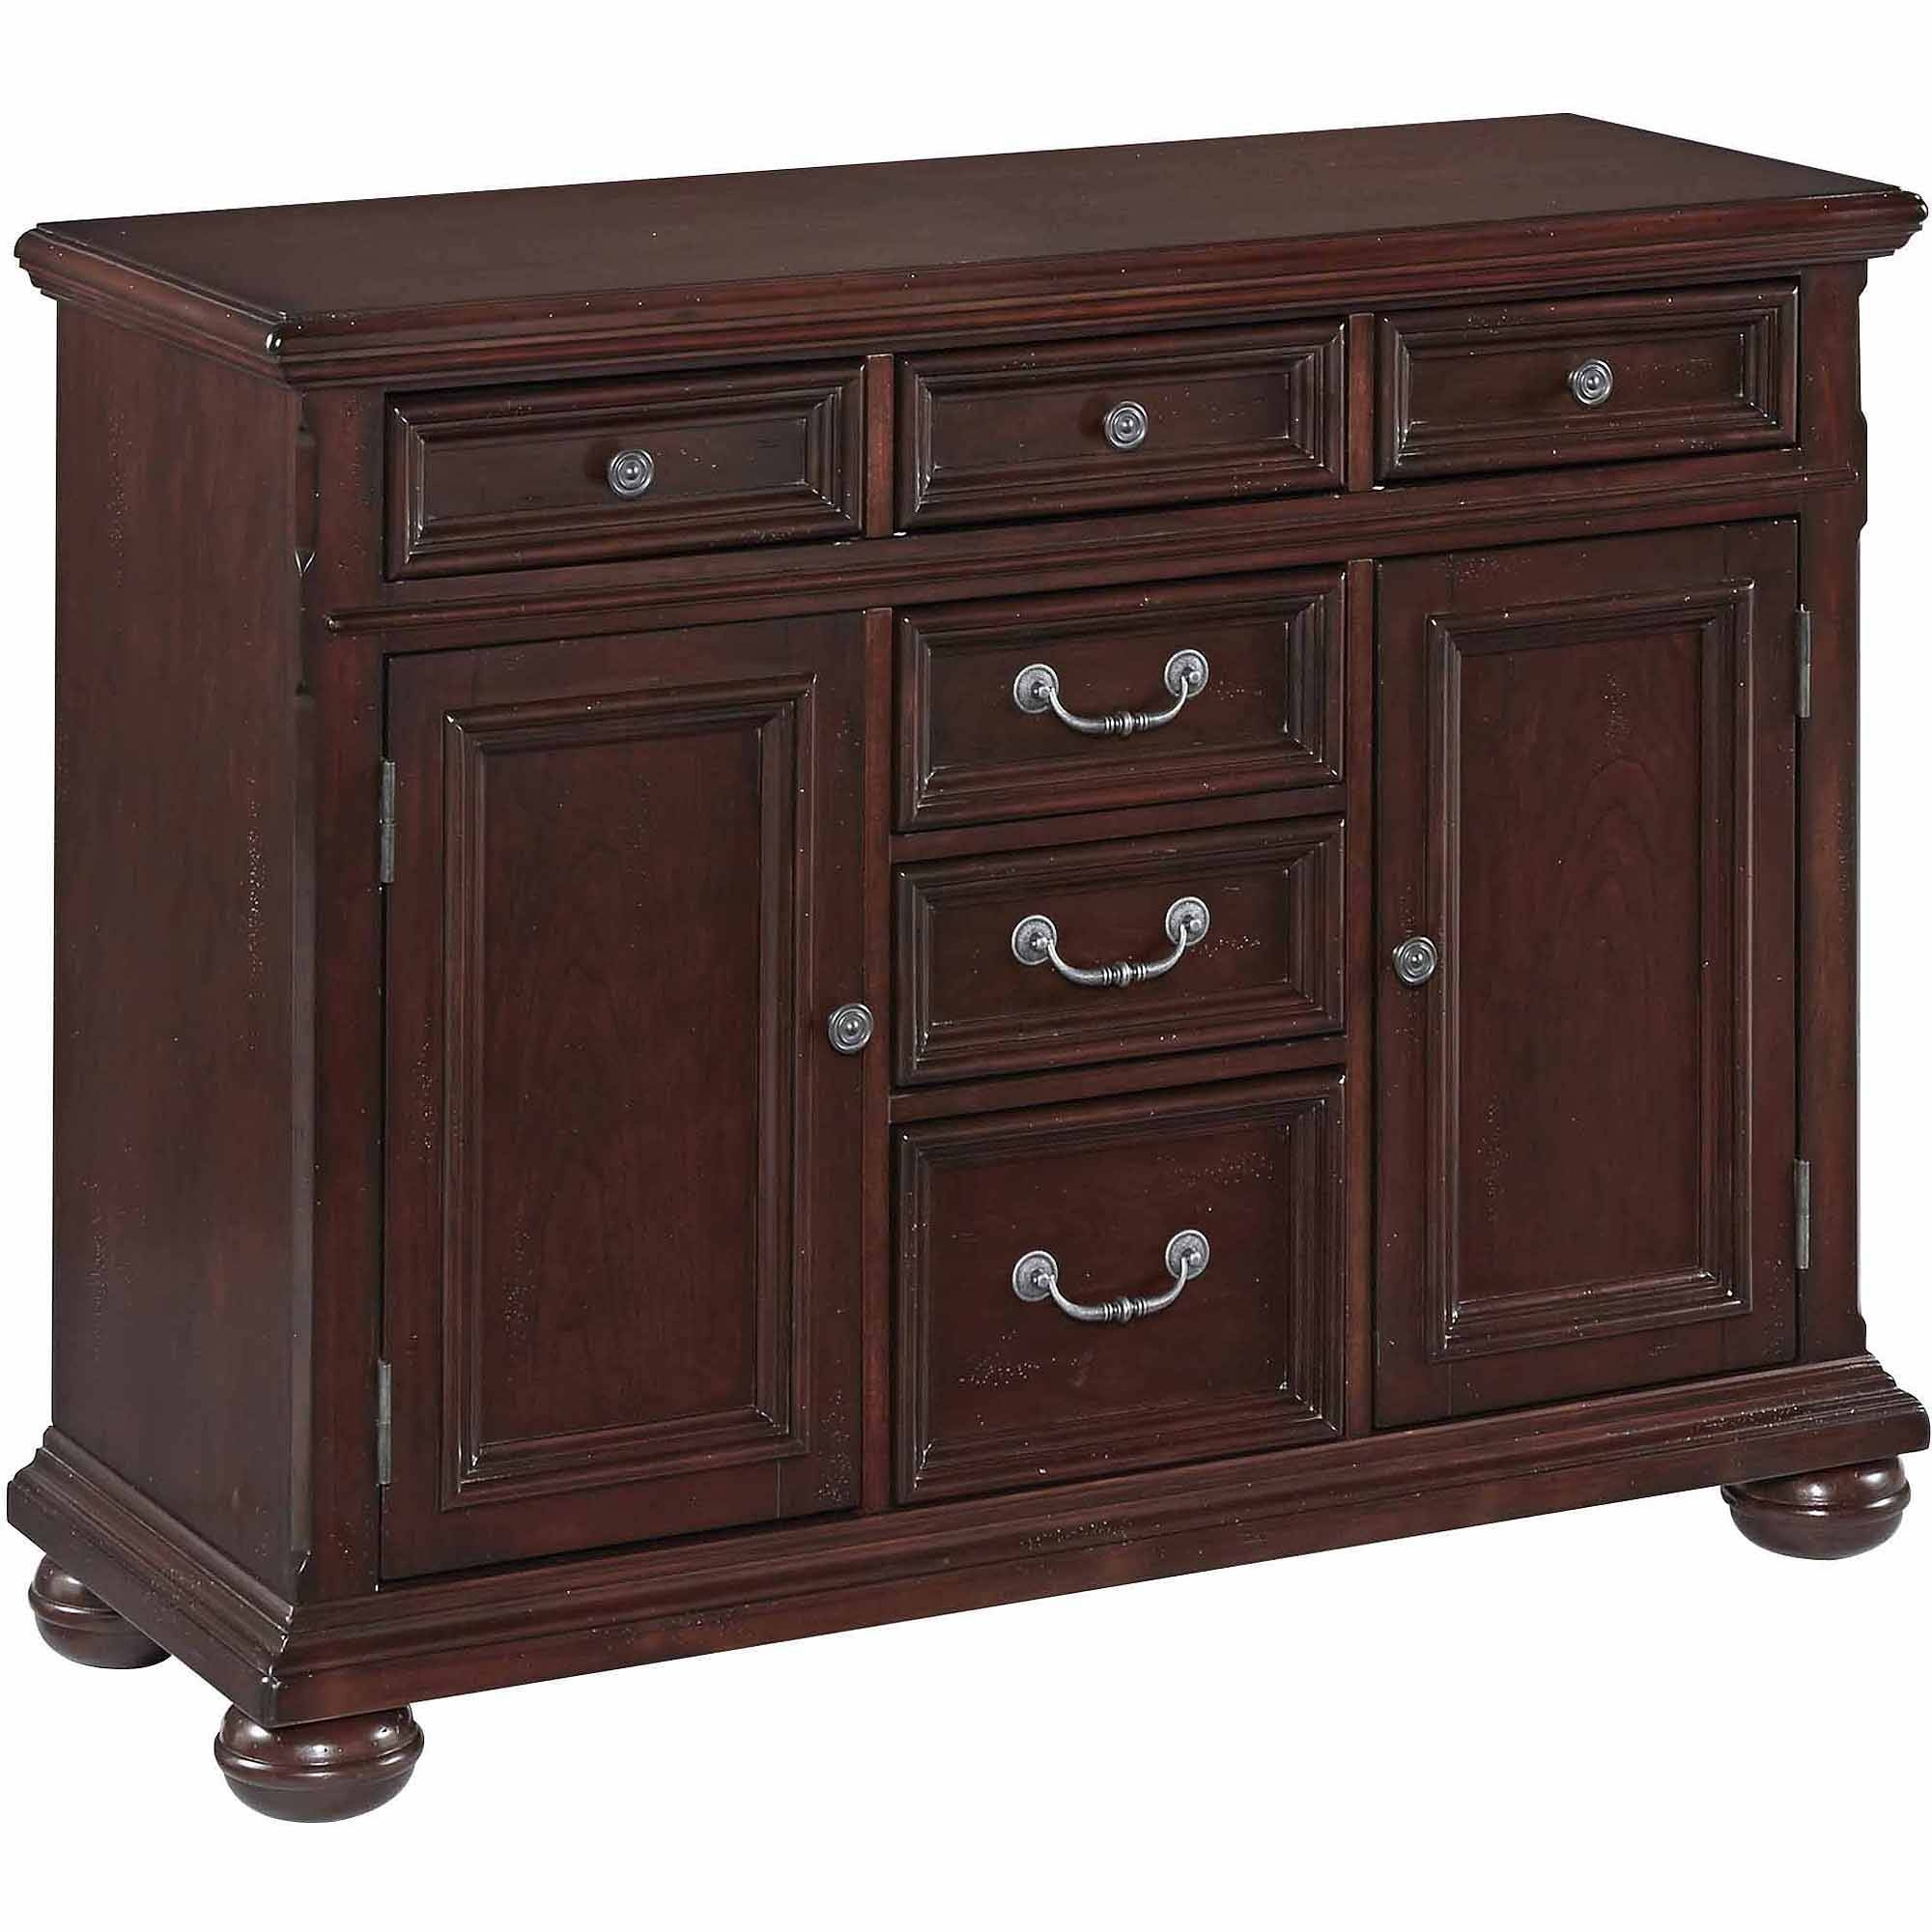 Sideboards & Buffets – Walmart For Traditional Sideboards (View 5 of 15)